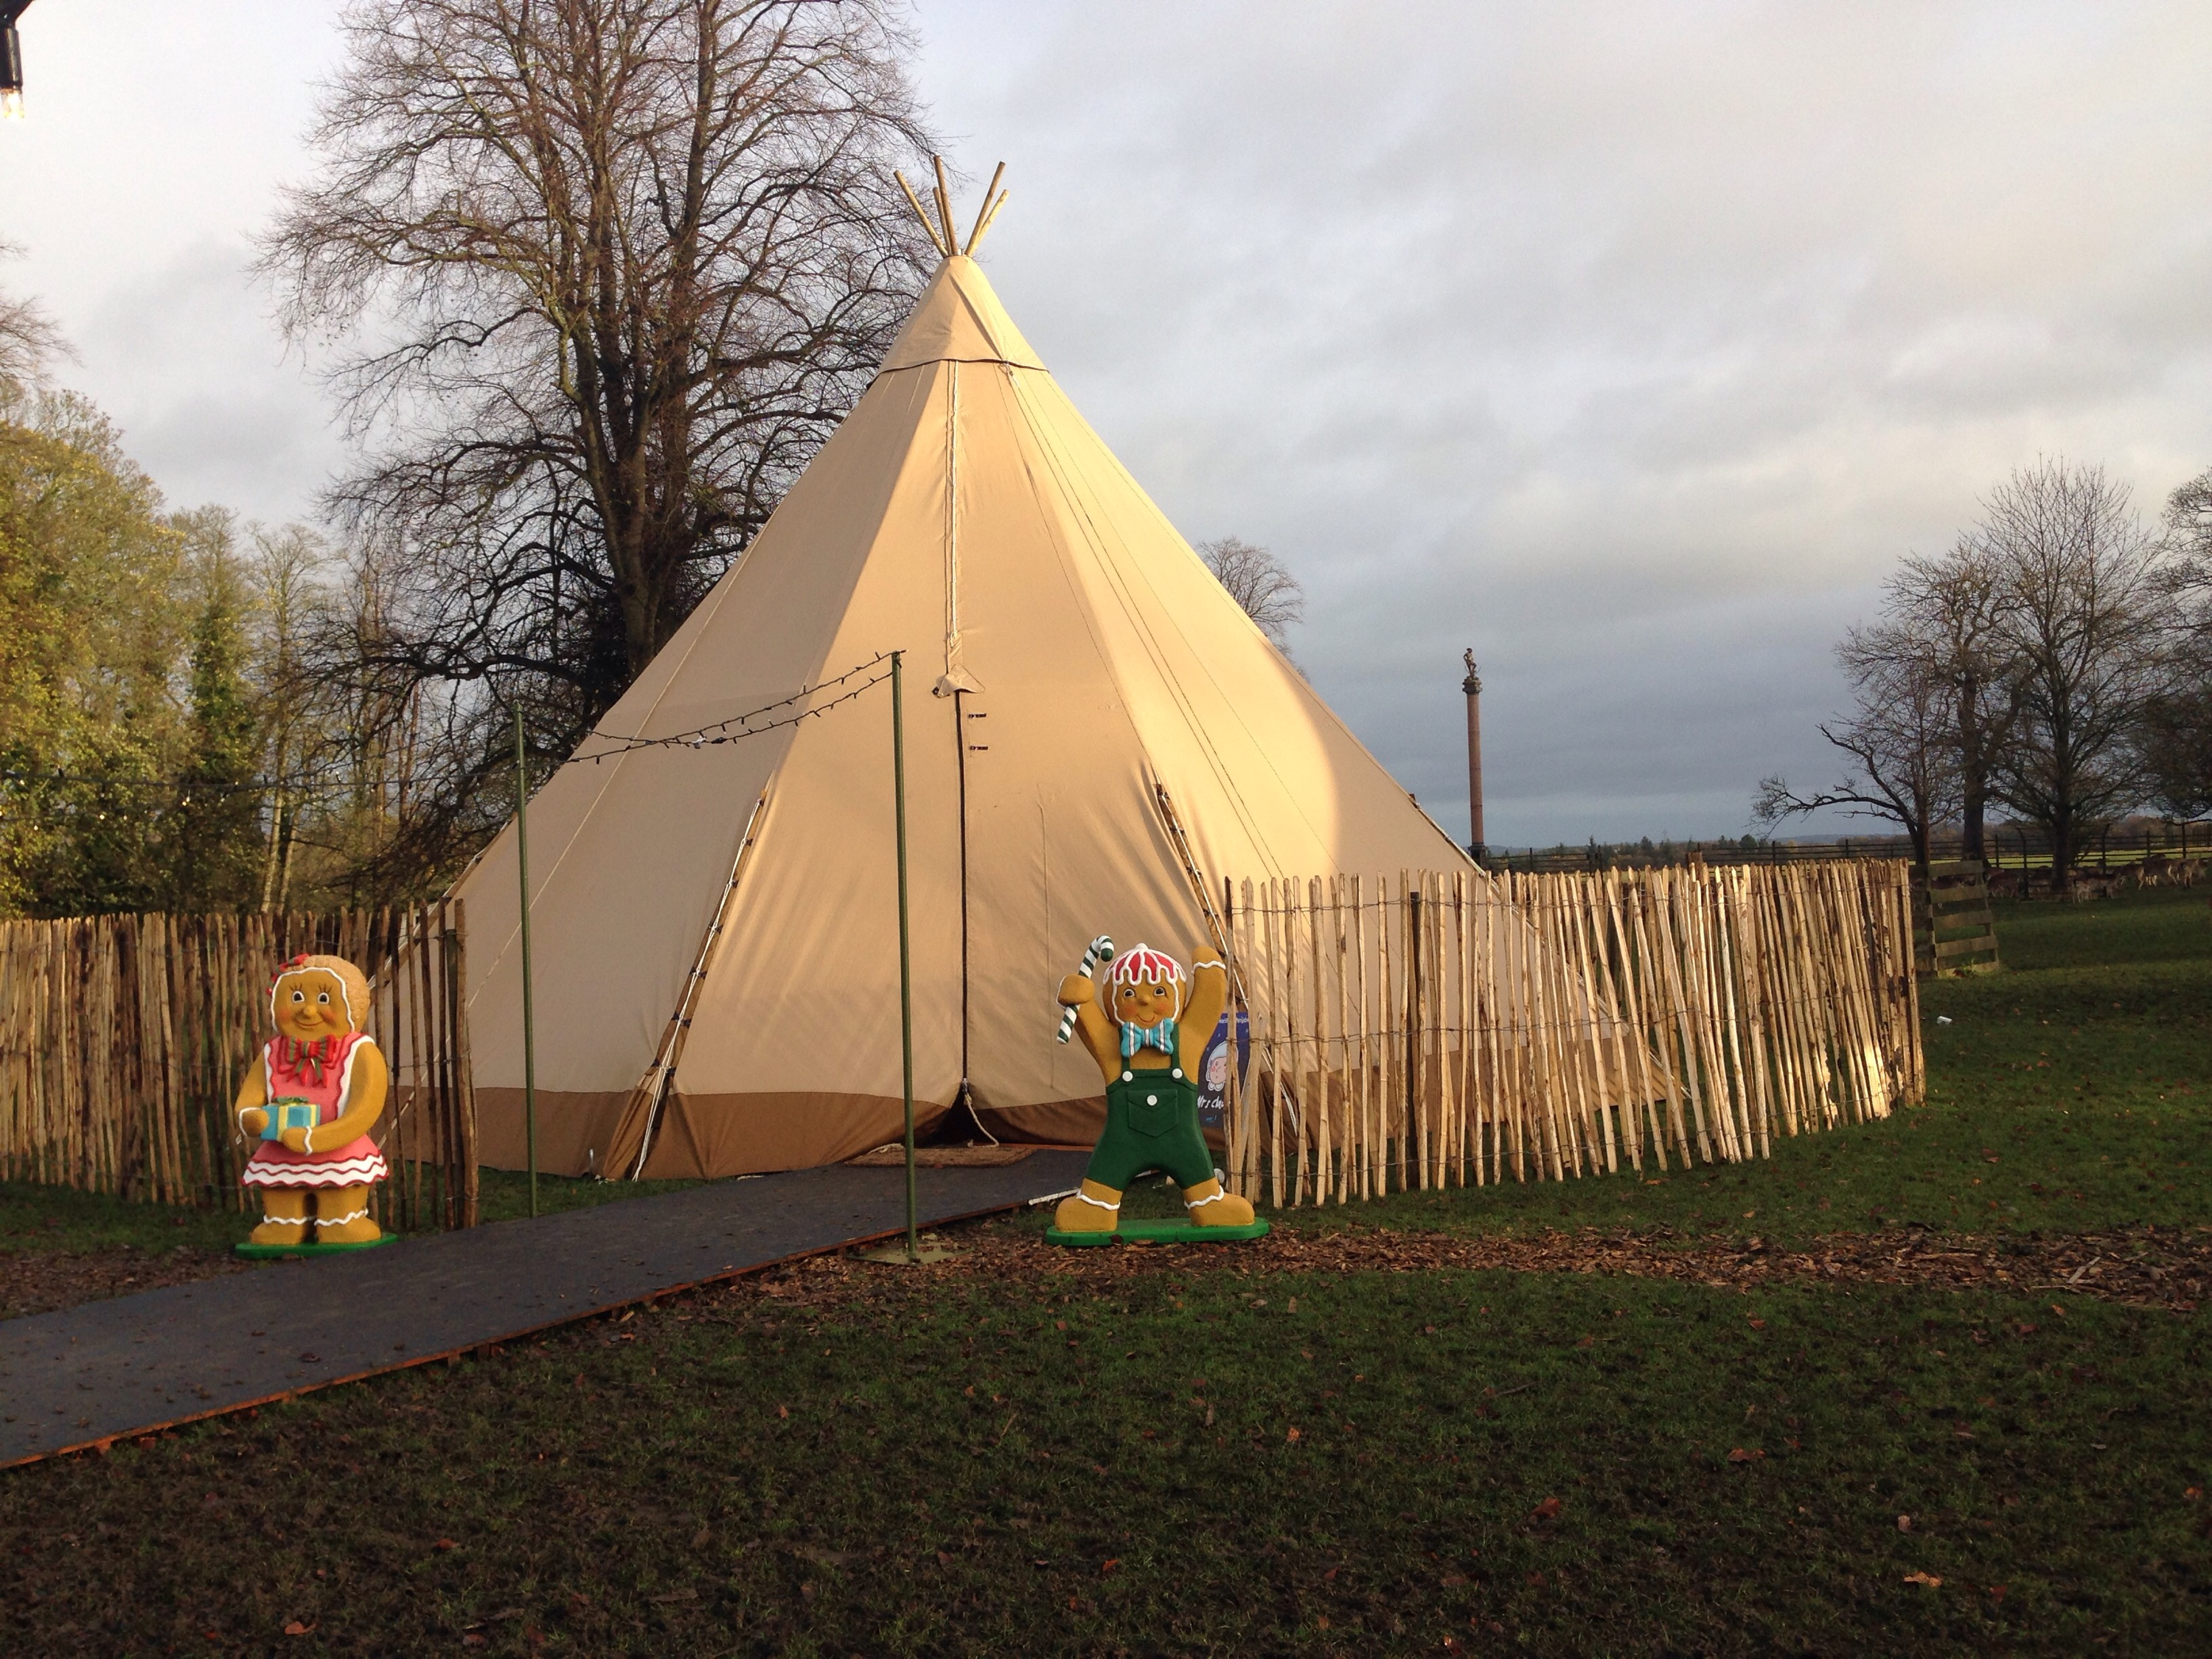 tipi tent at enchanted christmas event in whitworth hall